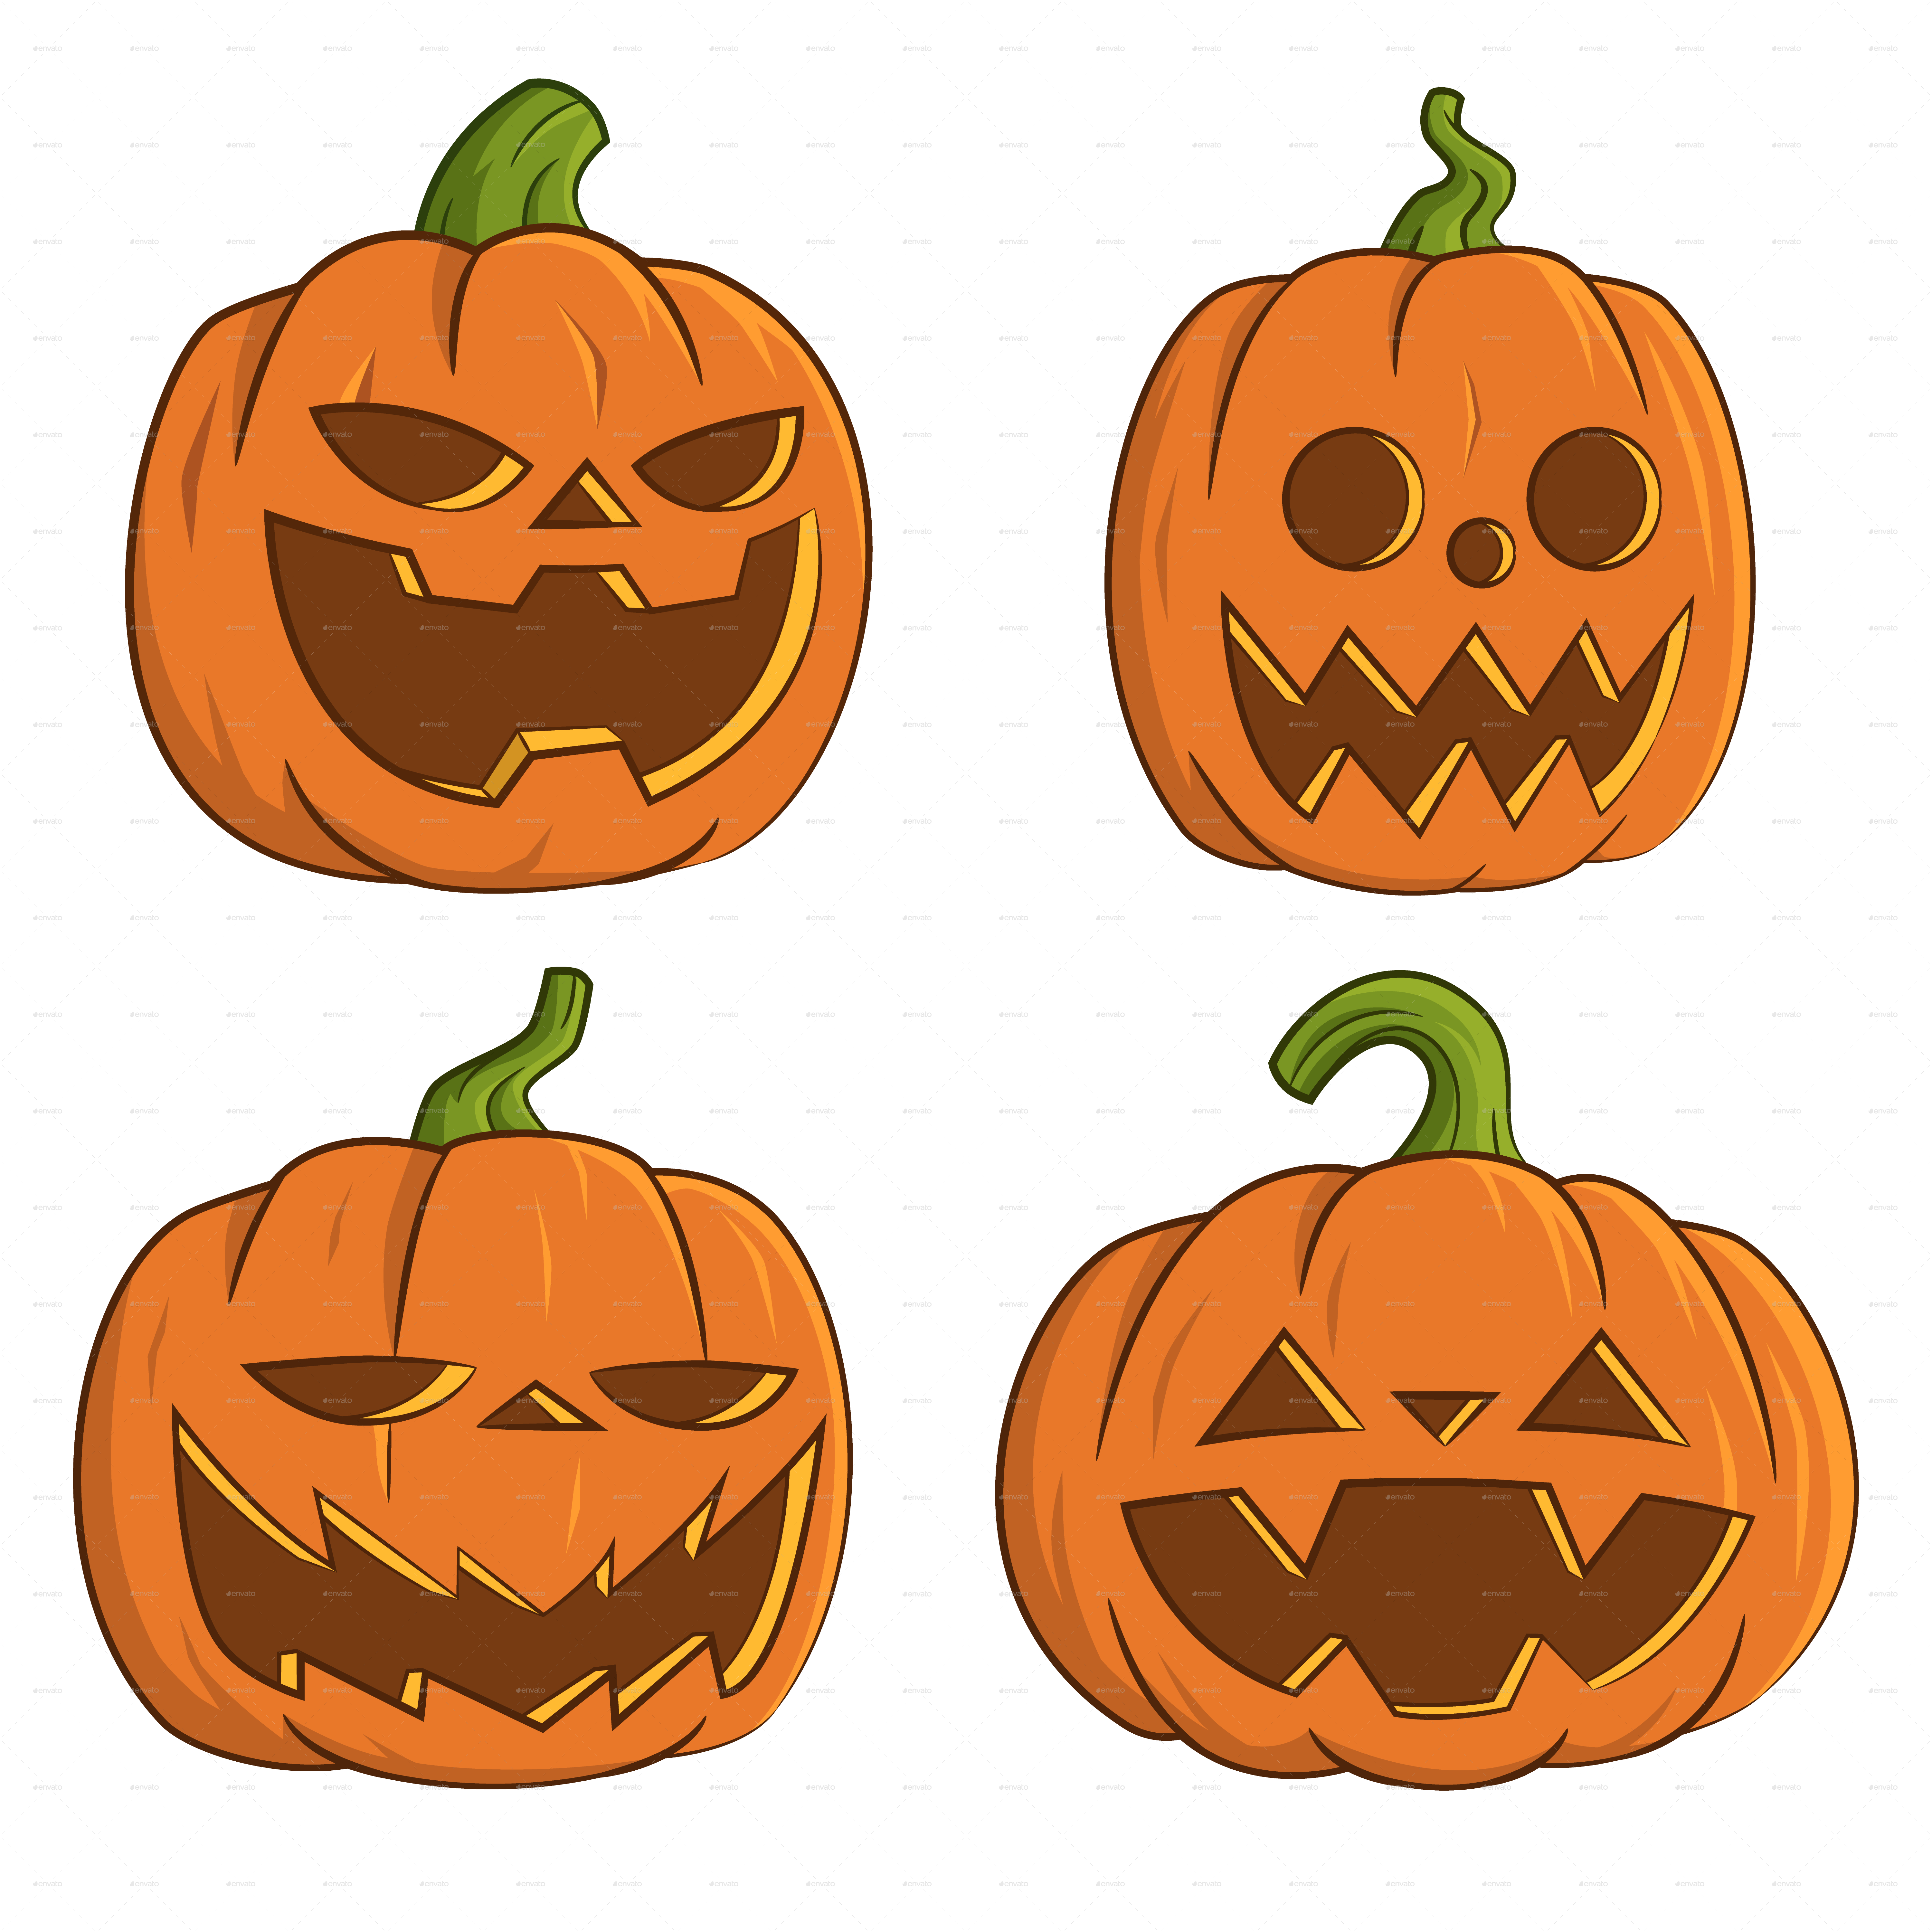 Fancy pumpkin clipart jpg black and white download Pumpkins for Halloween by Gatts | GraphicRiver jpg black and white download